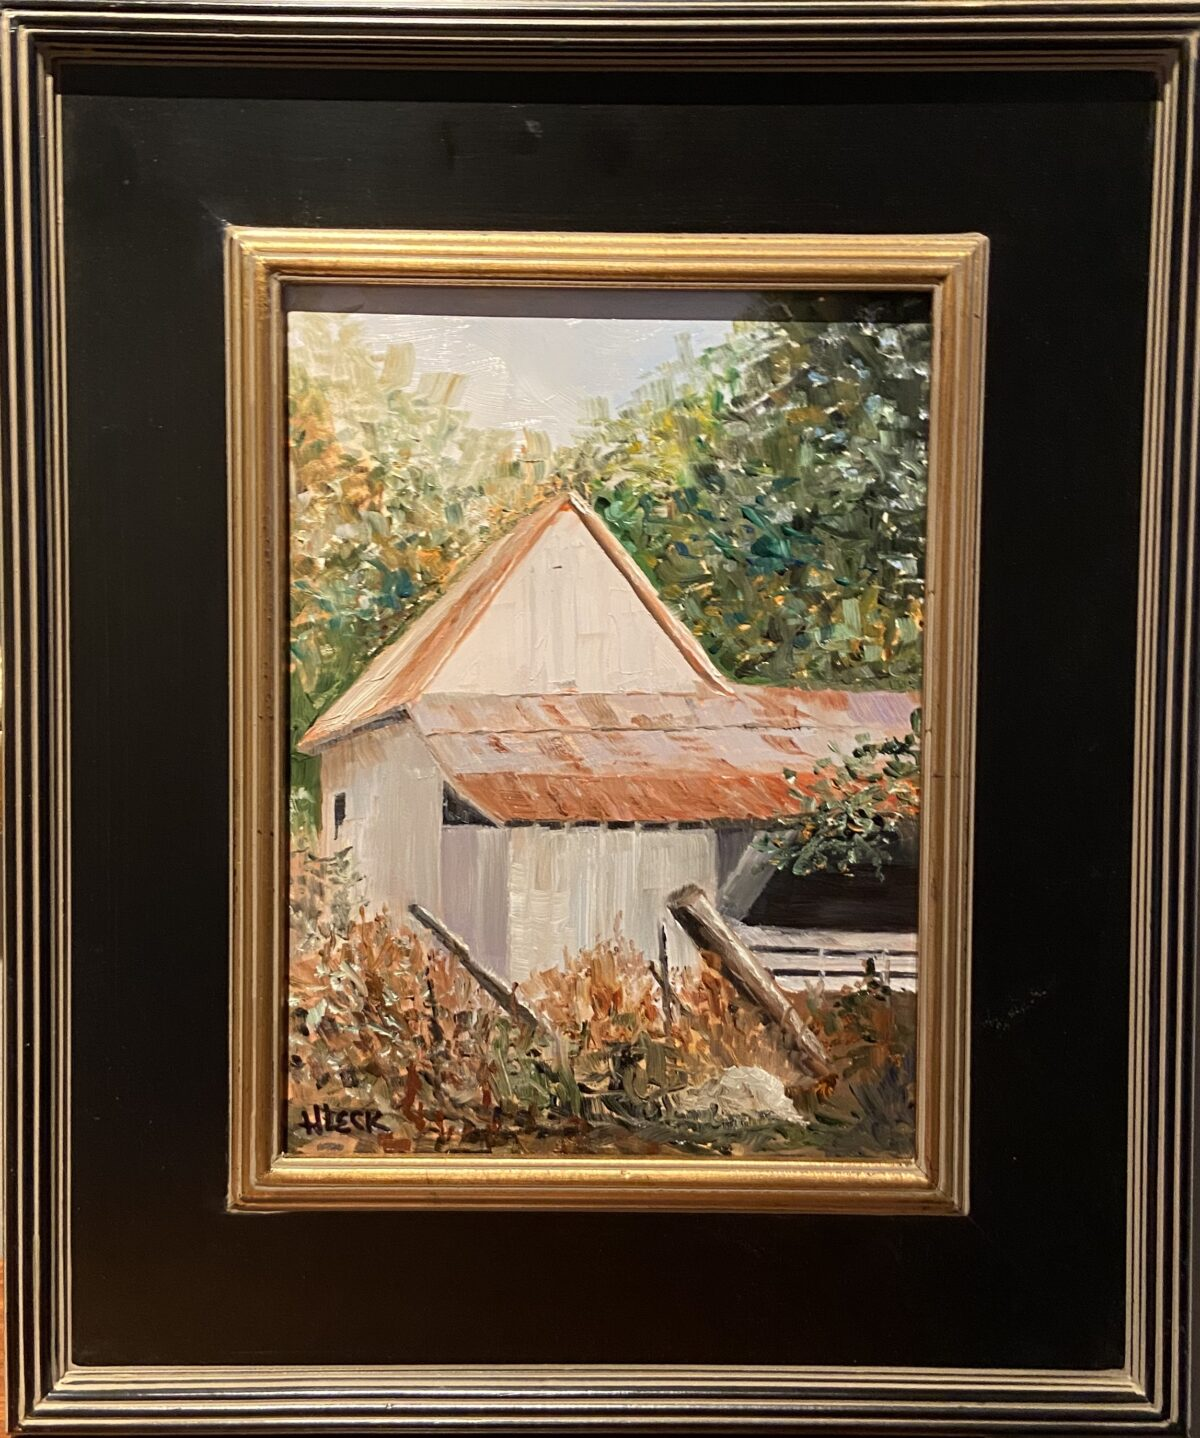 167 - Sweetwater Rd Barn - 9 x 12 - Architecture - $375 - Not Available